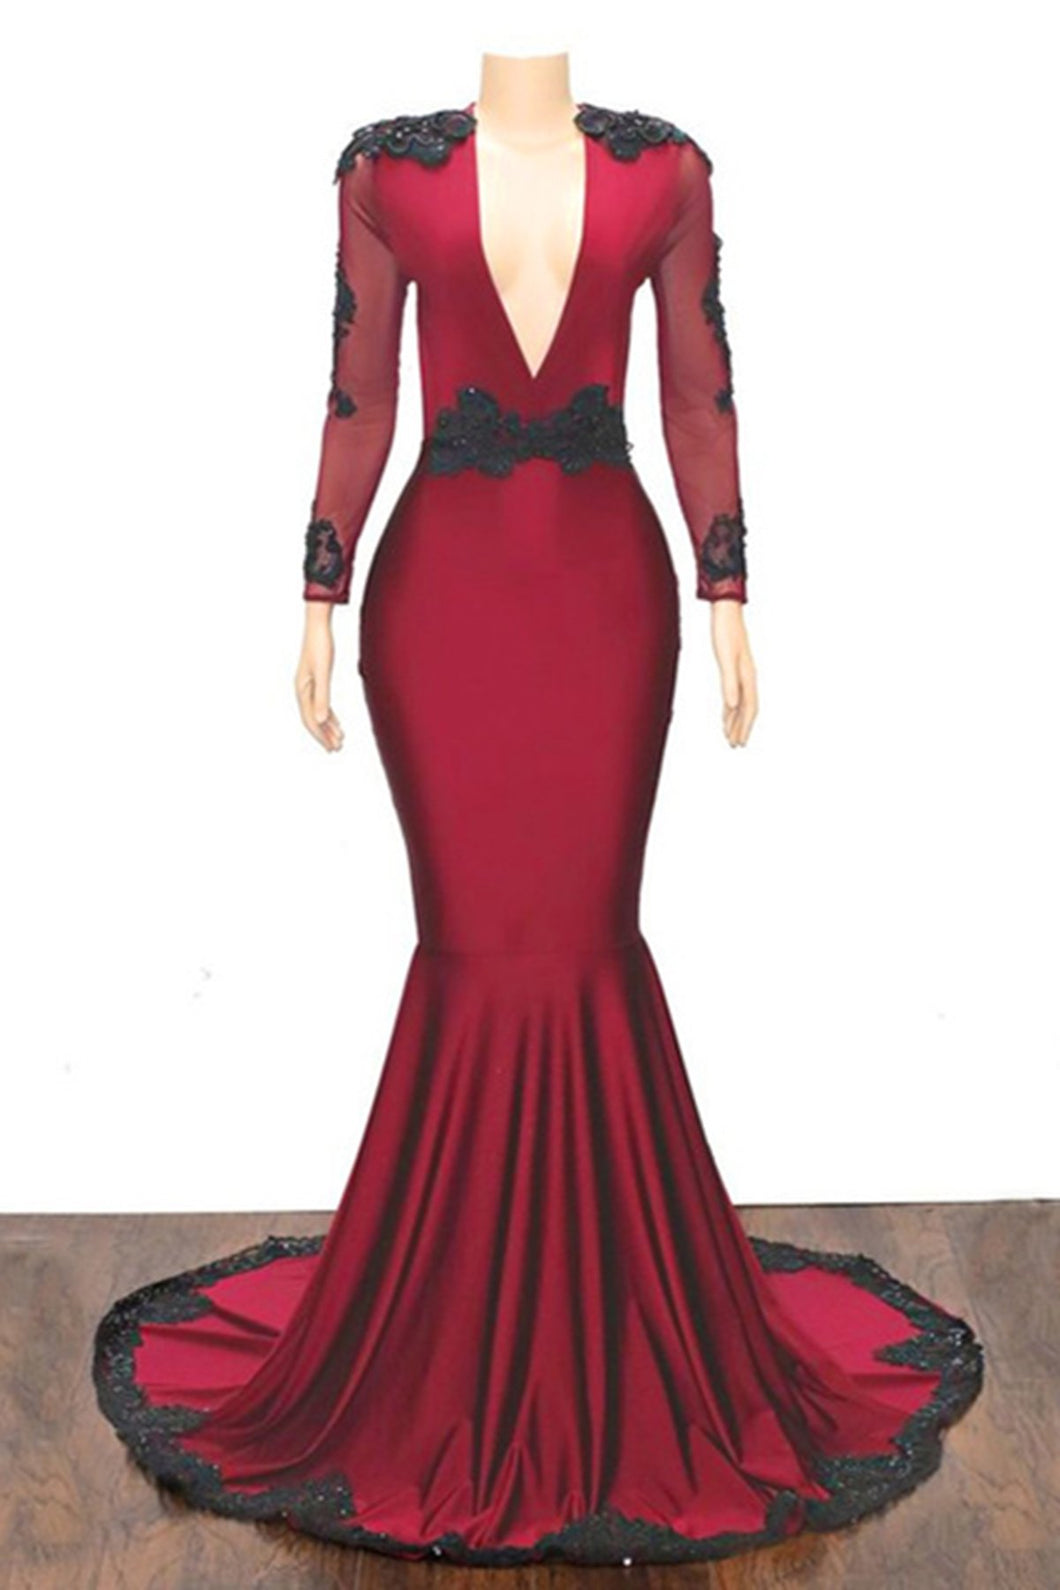 2019 Prom Dresses | Burgundy V Neck Long Mermaid Evening Dress, Prom Dress With Sleeve